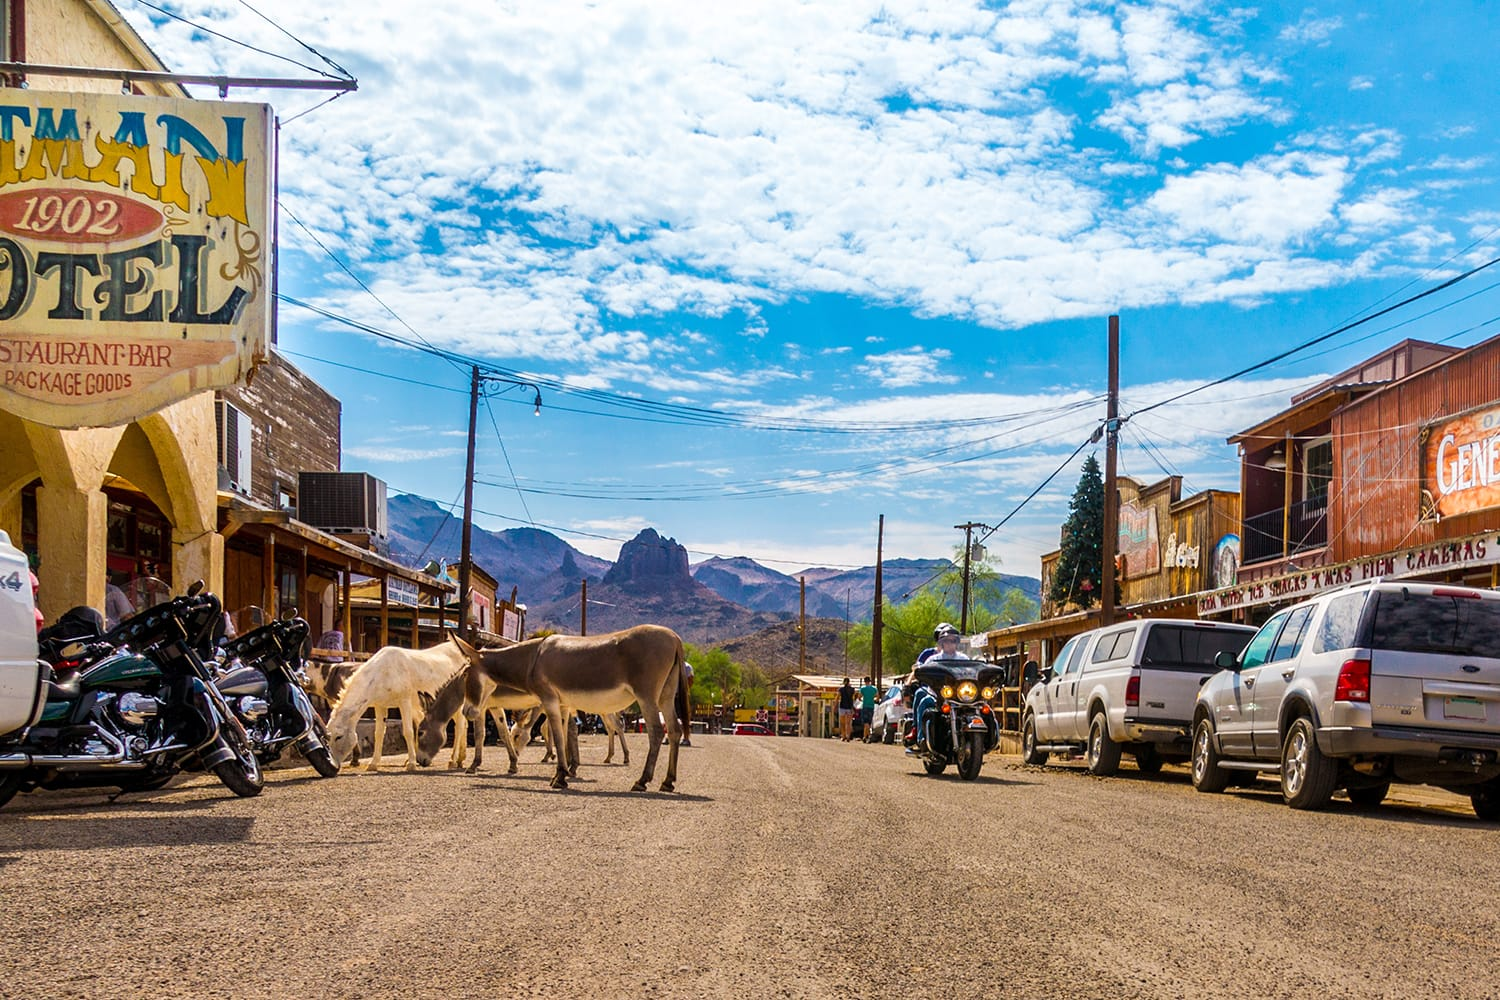 Panoramic view of Oatman - a historic ghost town in Arizona, USA